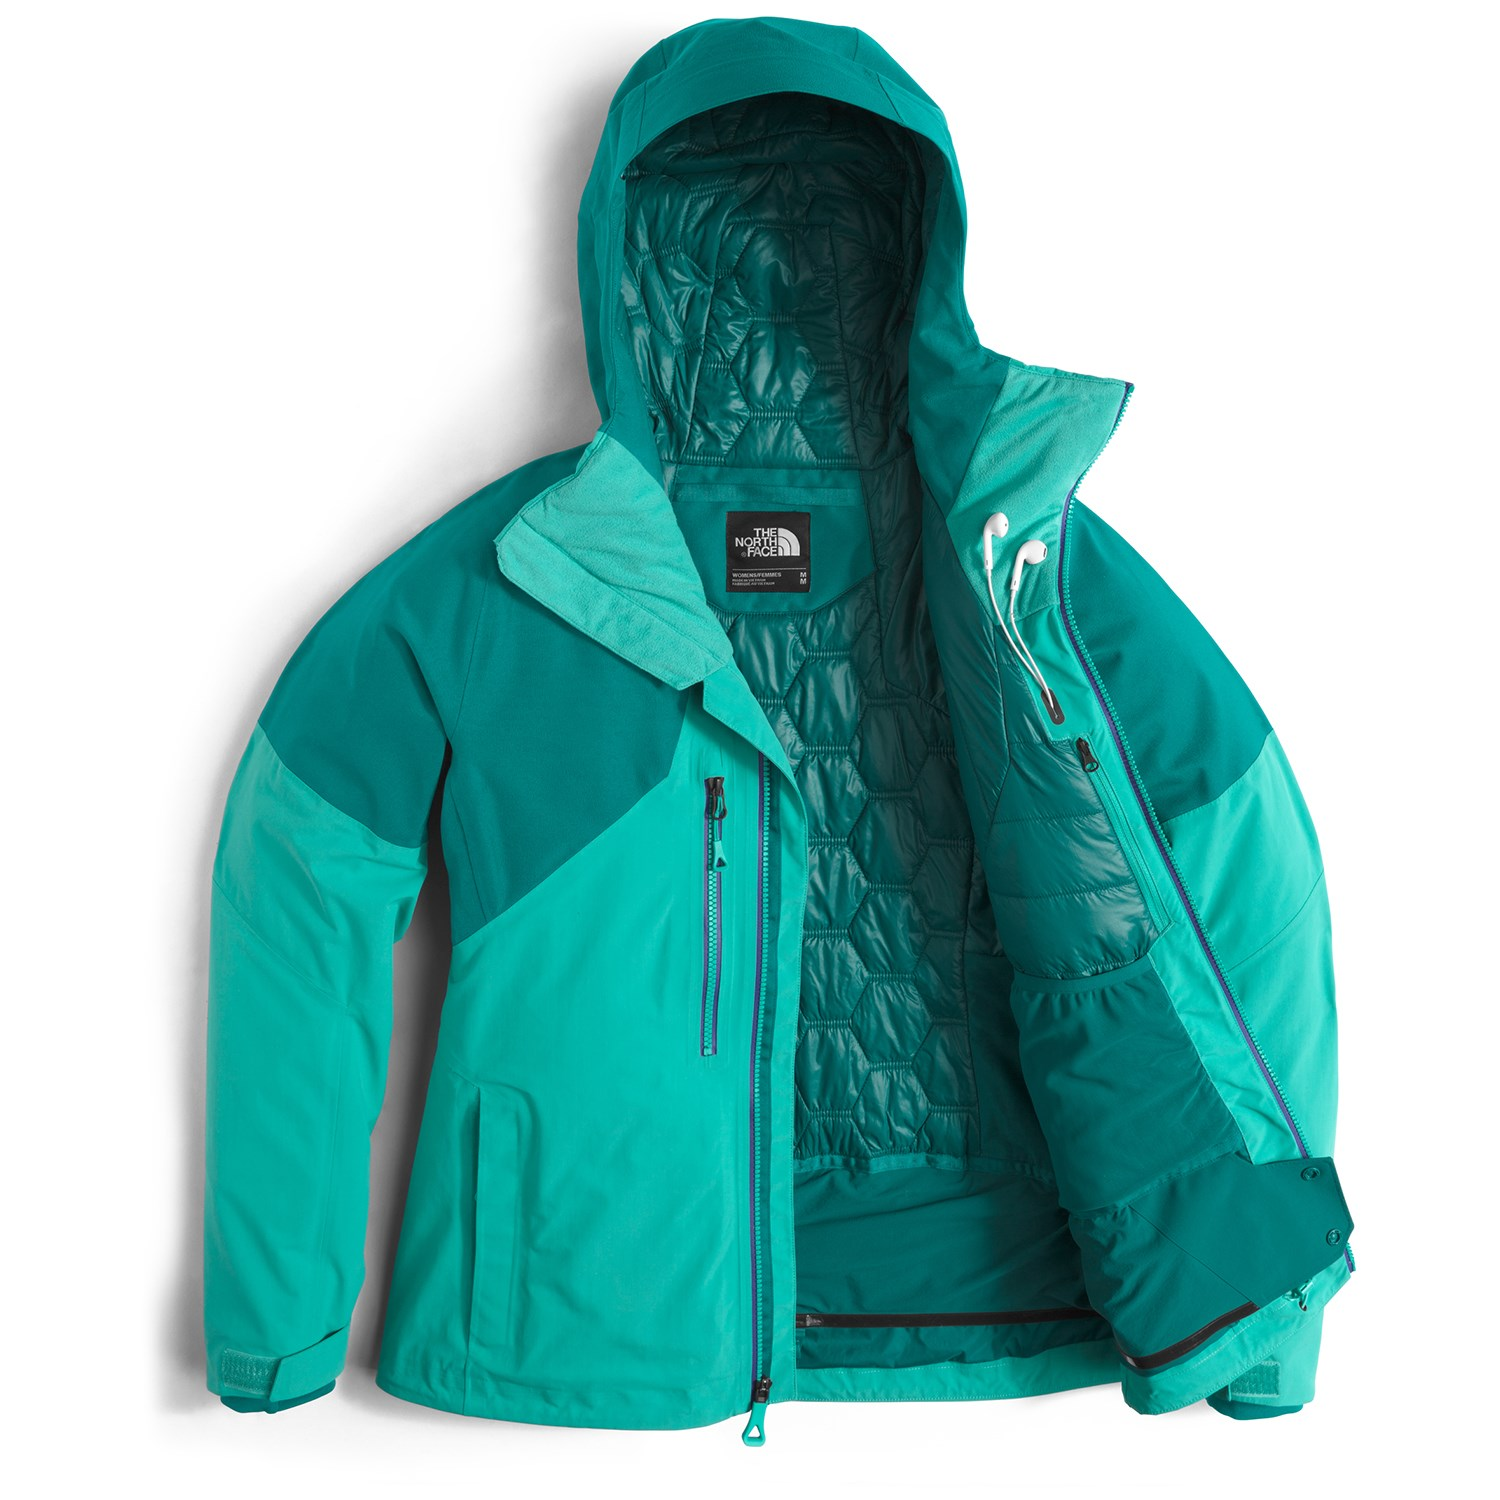 224122178c The North Face Powder Guide Jacket - Women's | evo